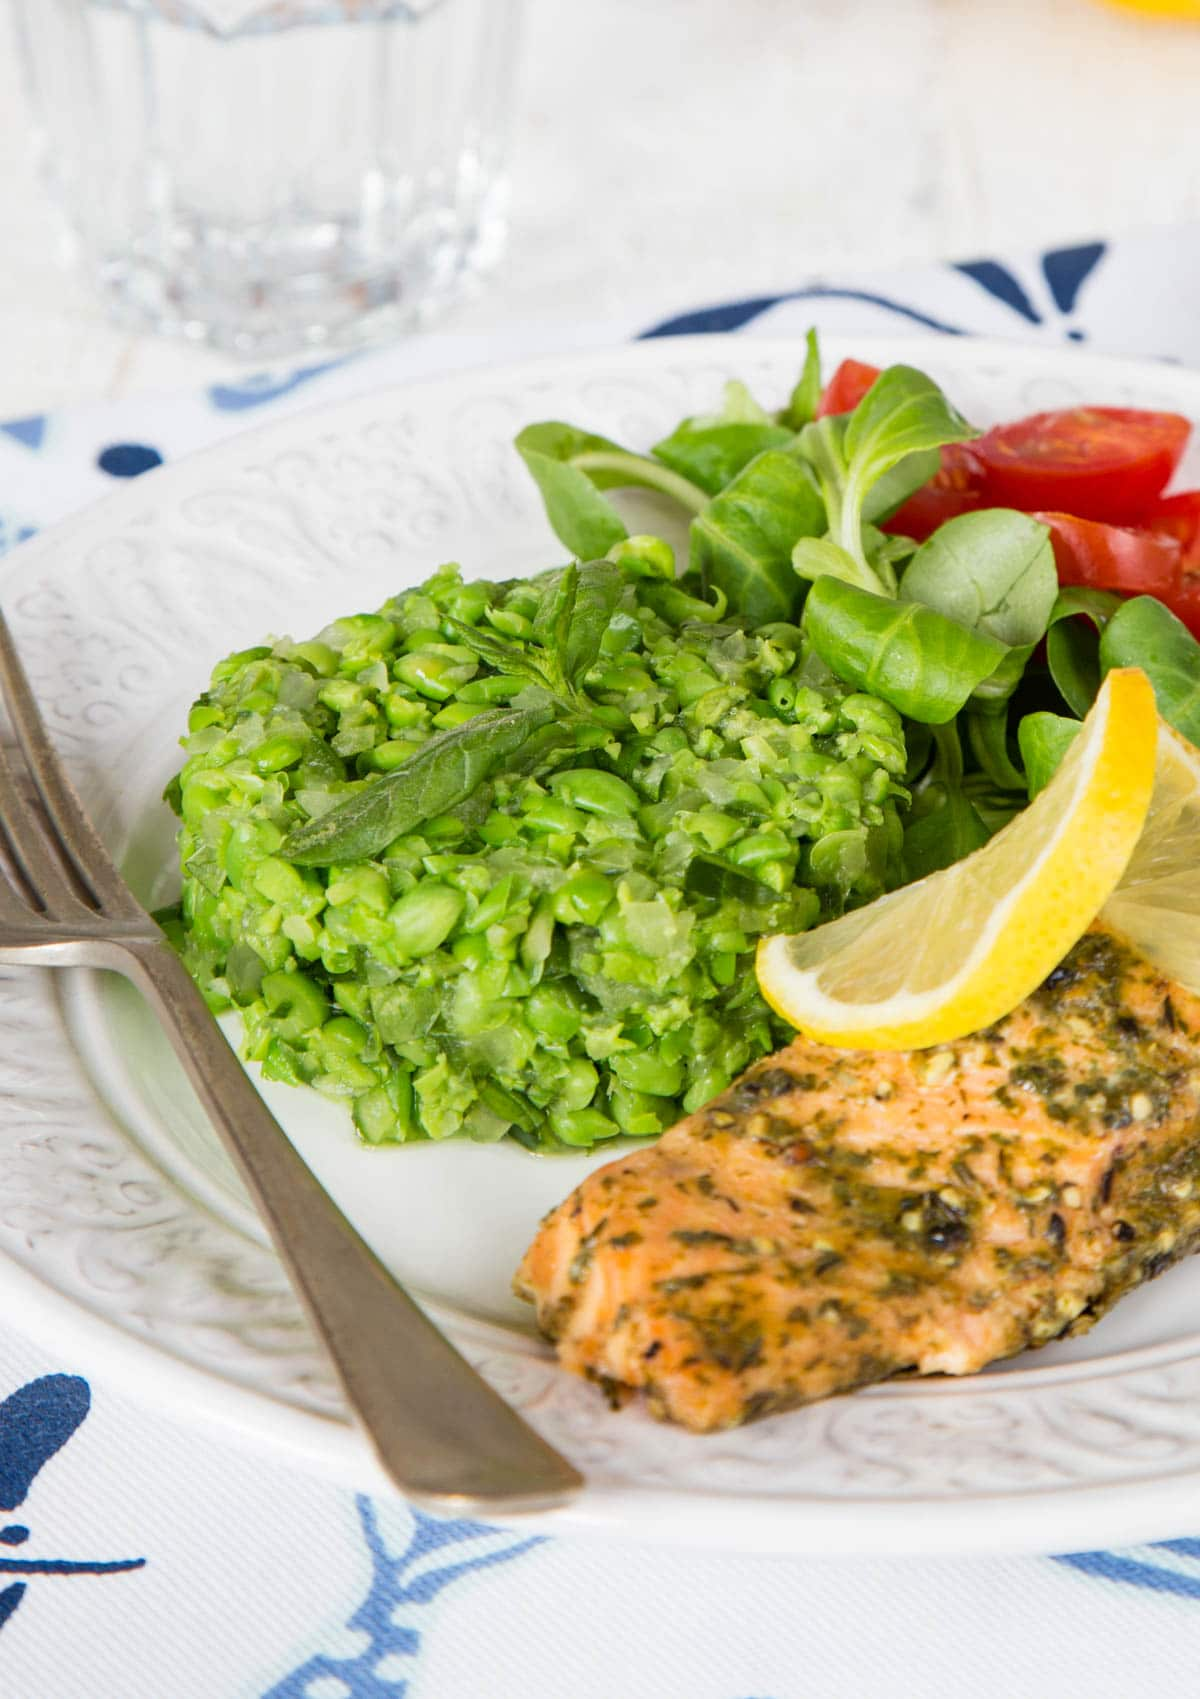 Deliciously vibrant green crushed minted peas, served on a white plate with some hot smoked salmon.